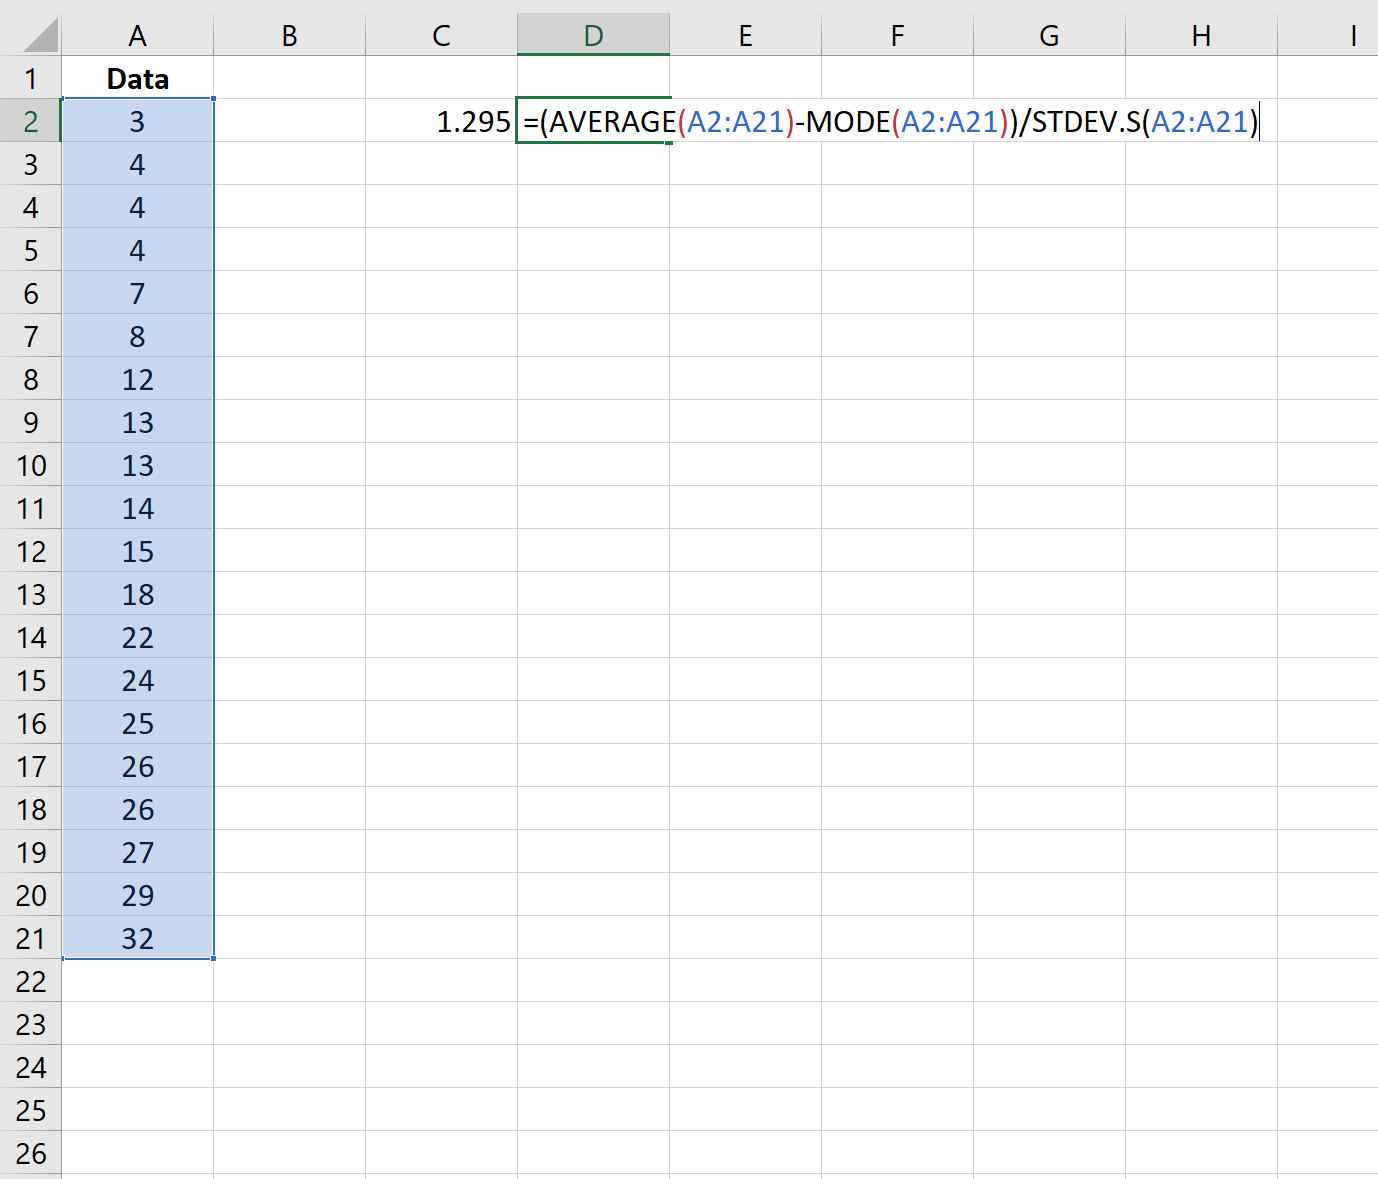 Pearson's coefficient of skewness in Excel